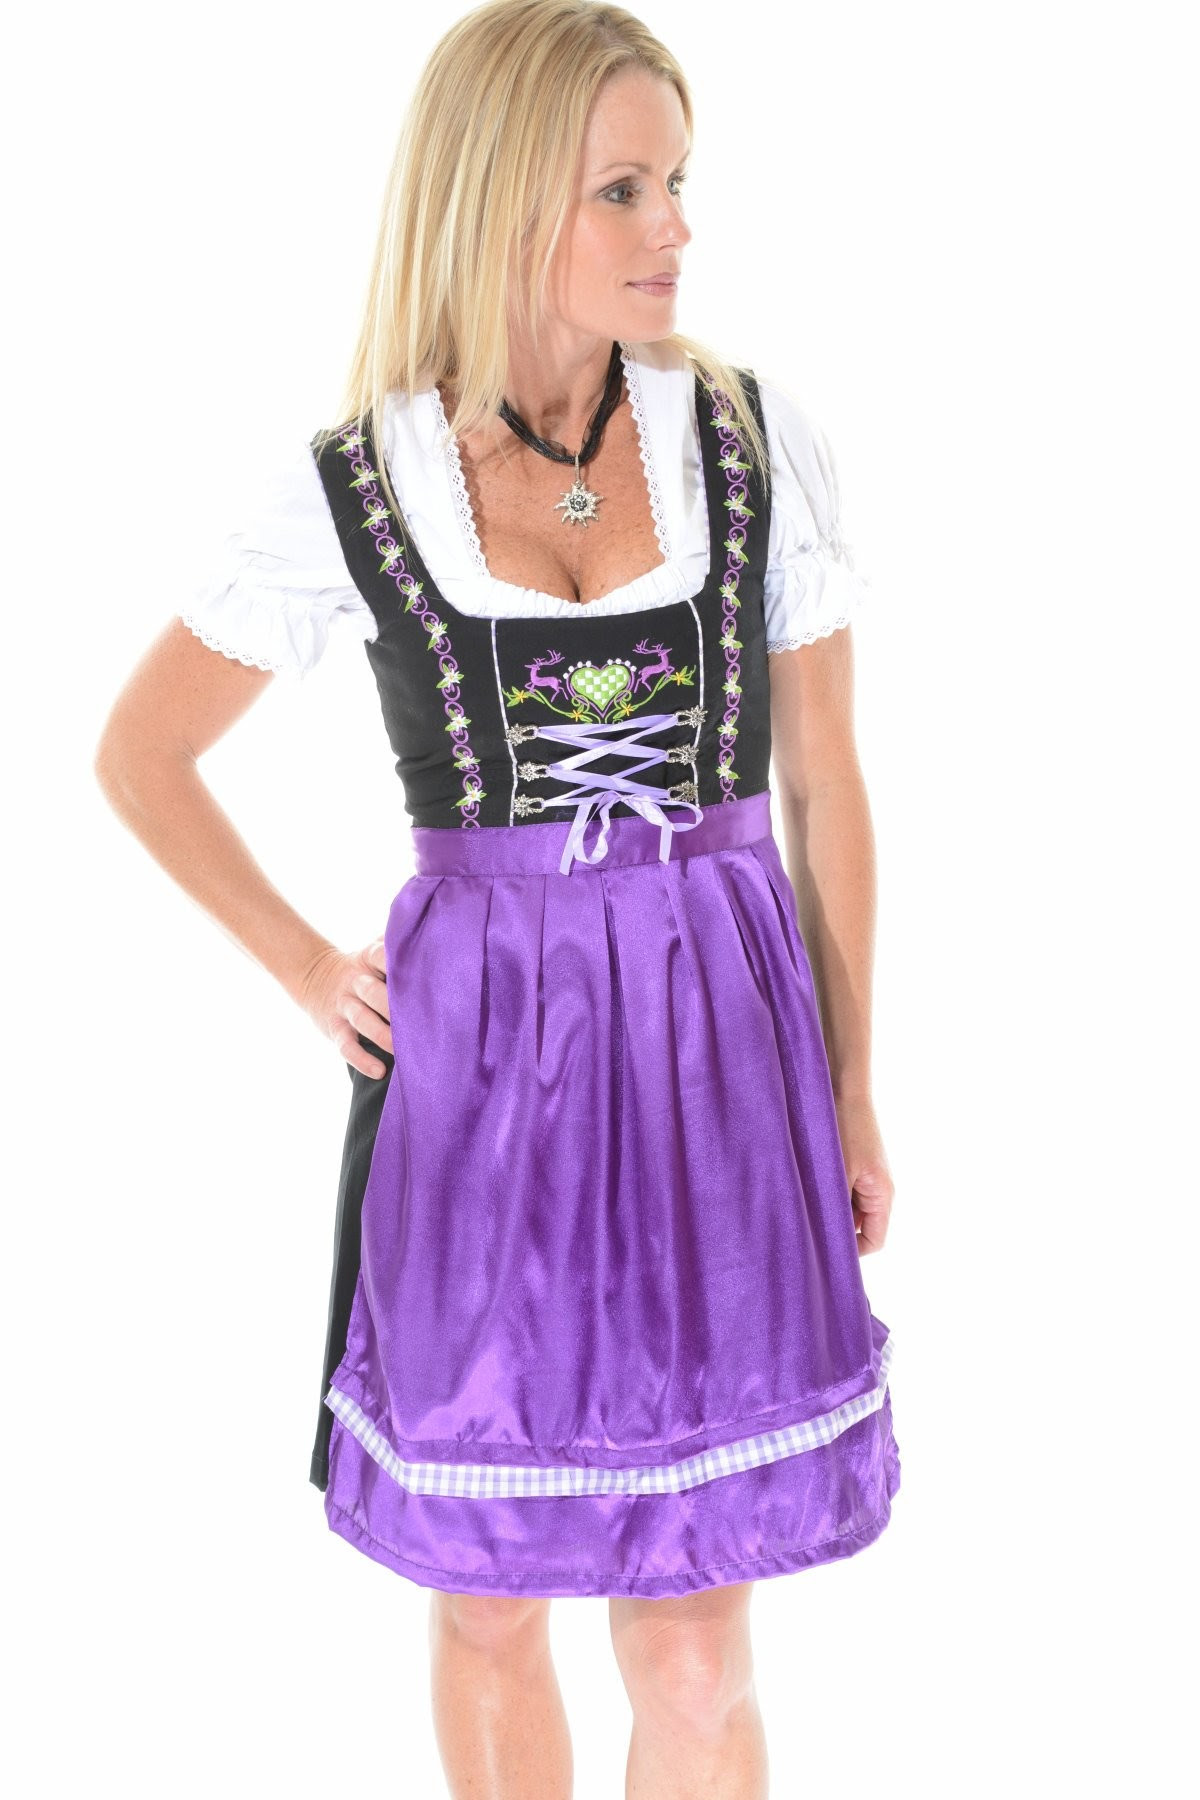 dirndl  dirndl apparel  dirndl dress  dirndl costume